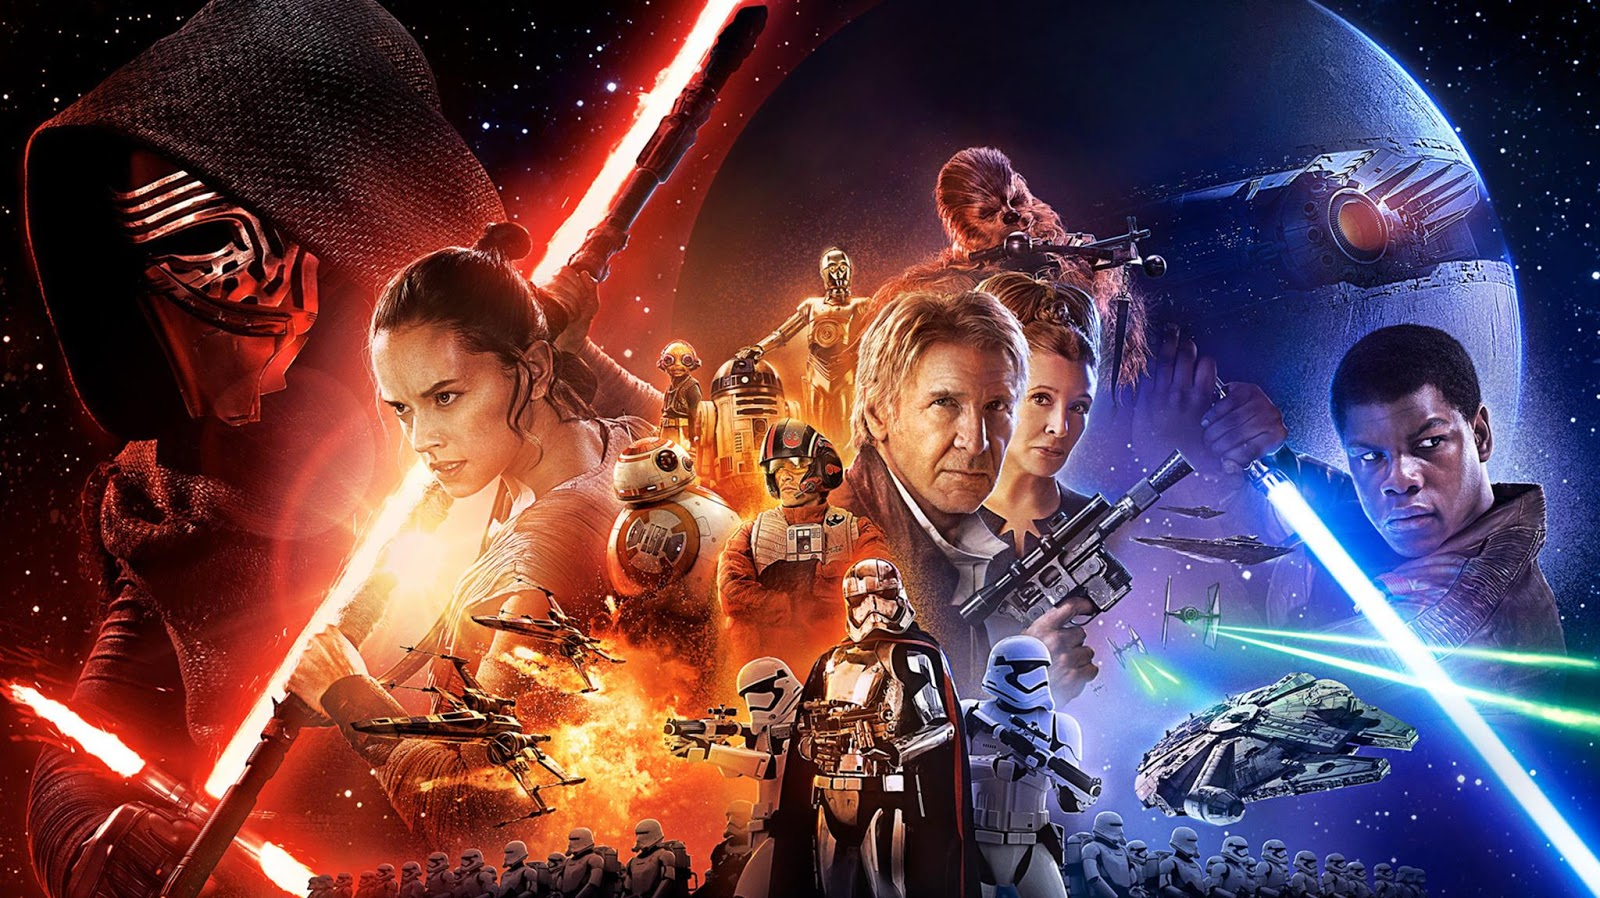 2019 Is Shaping Up To Be The Biggest Year For Star Wars Ever